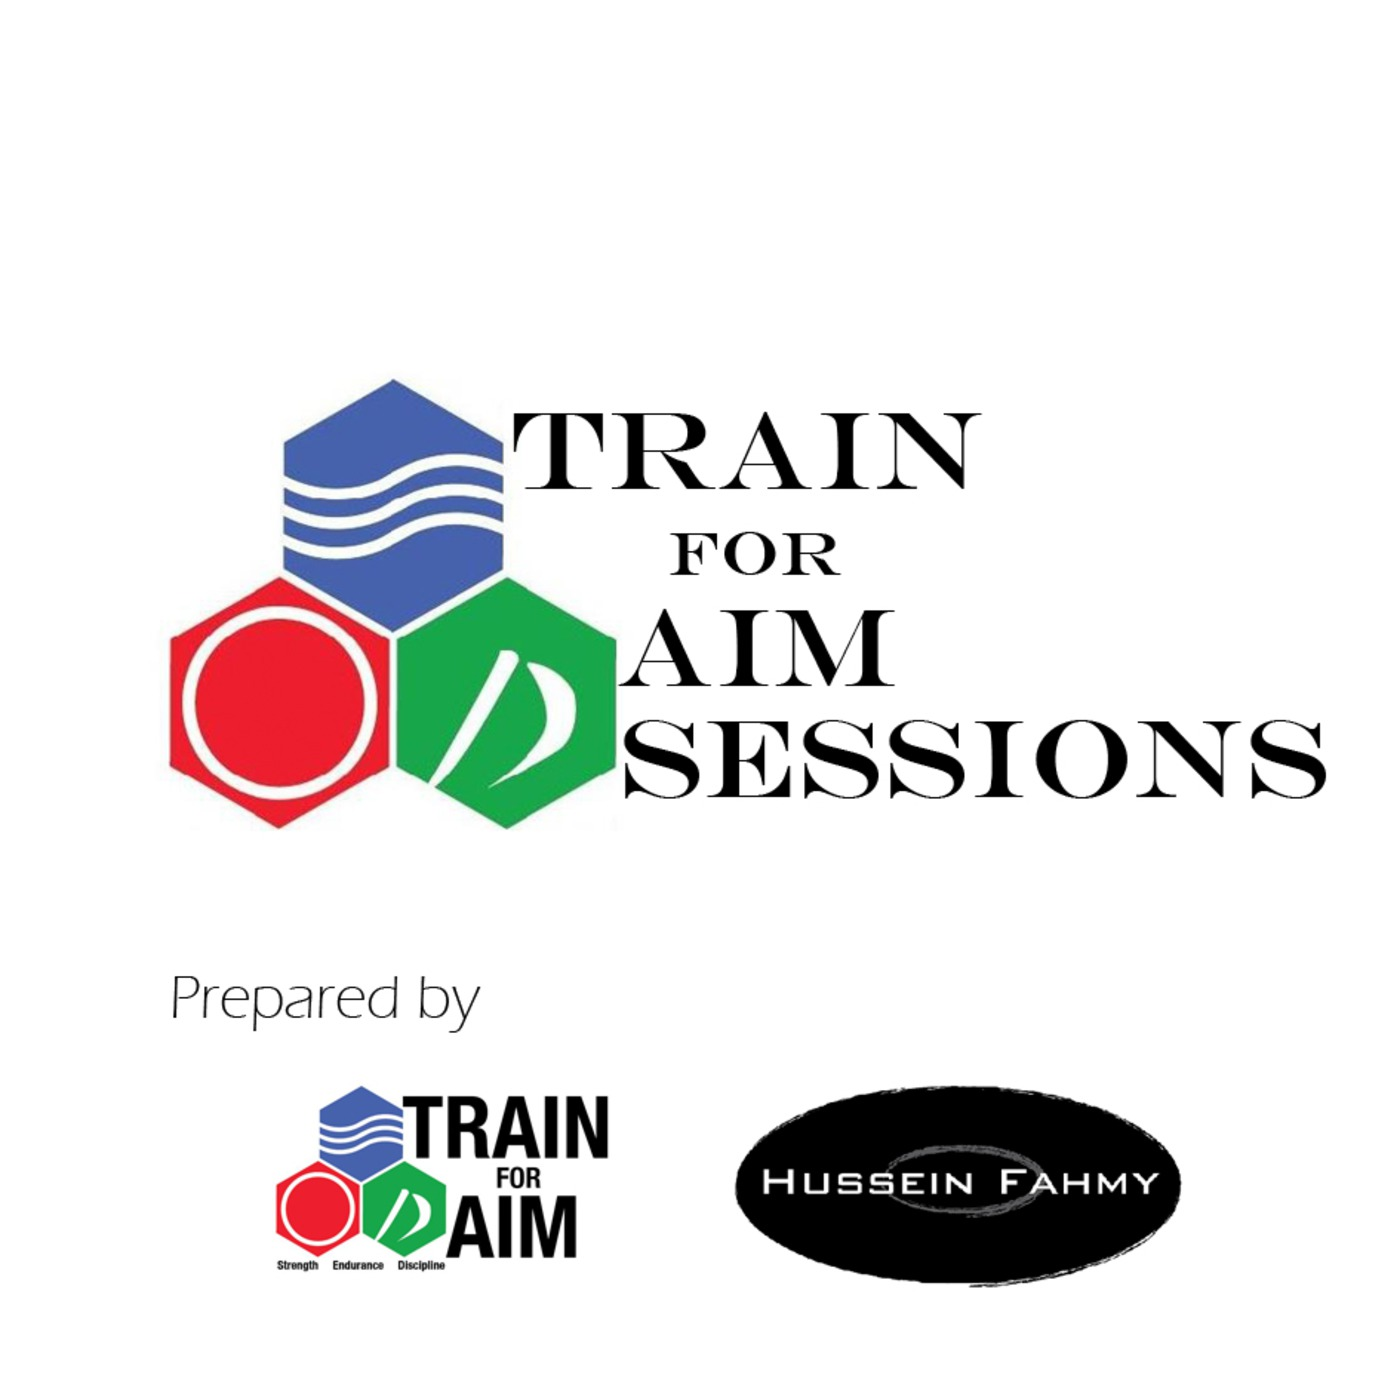 Train For Aim Sessions